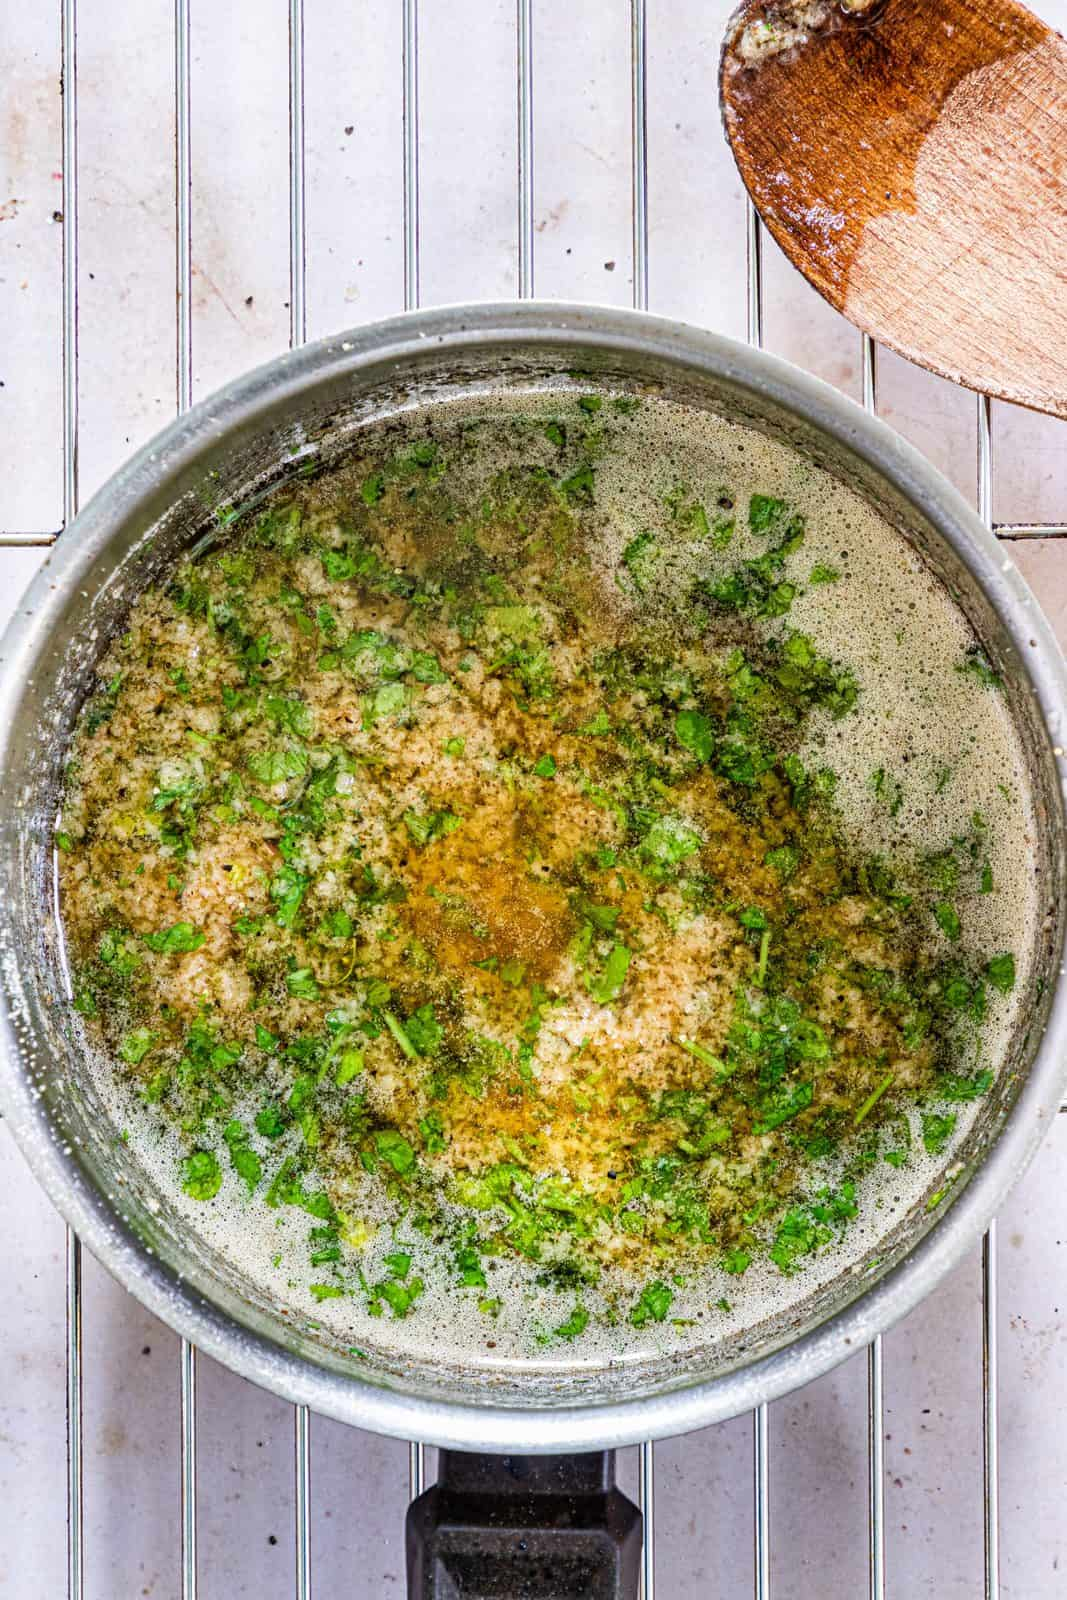 Garlic, parsley, salt and black pepper added to browned butter in pan.